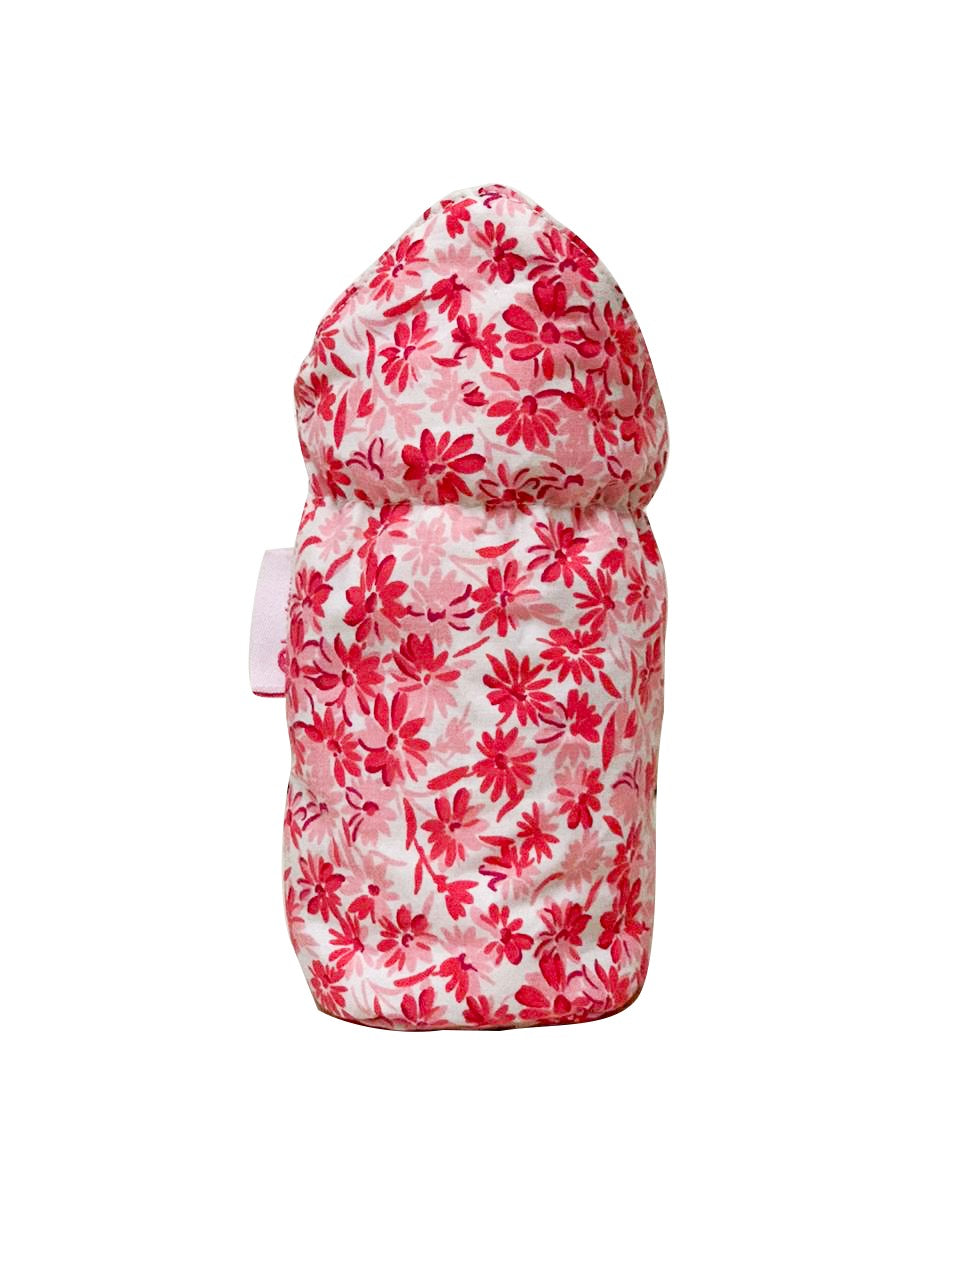 Red Flowers Bottle Cover